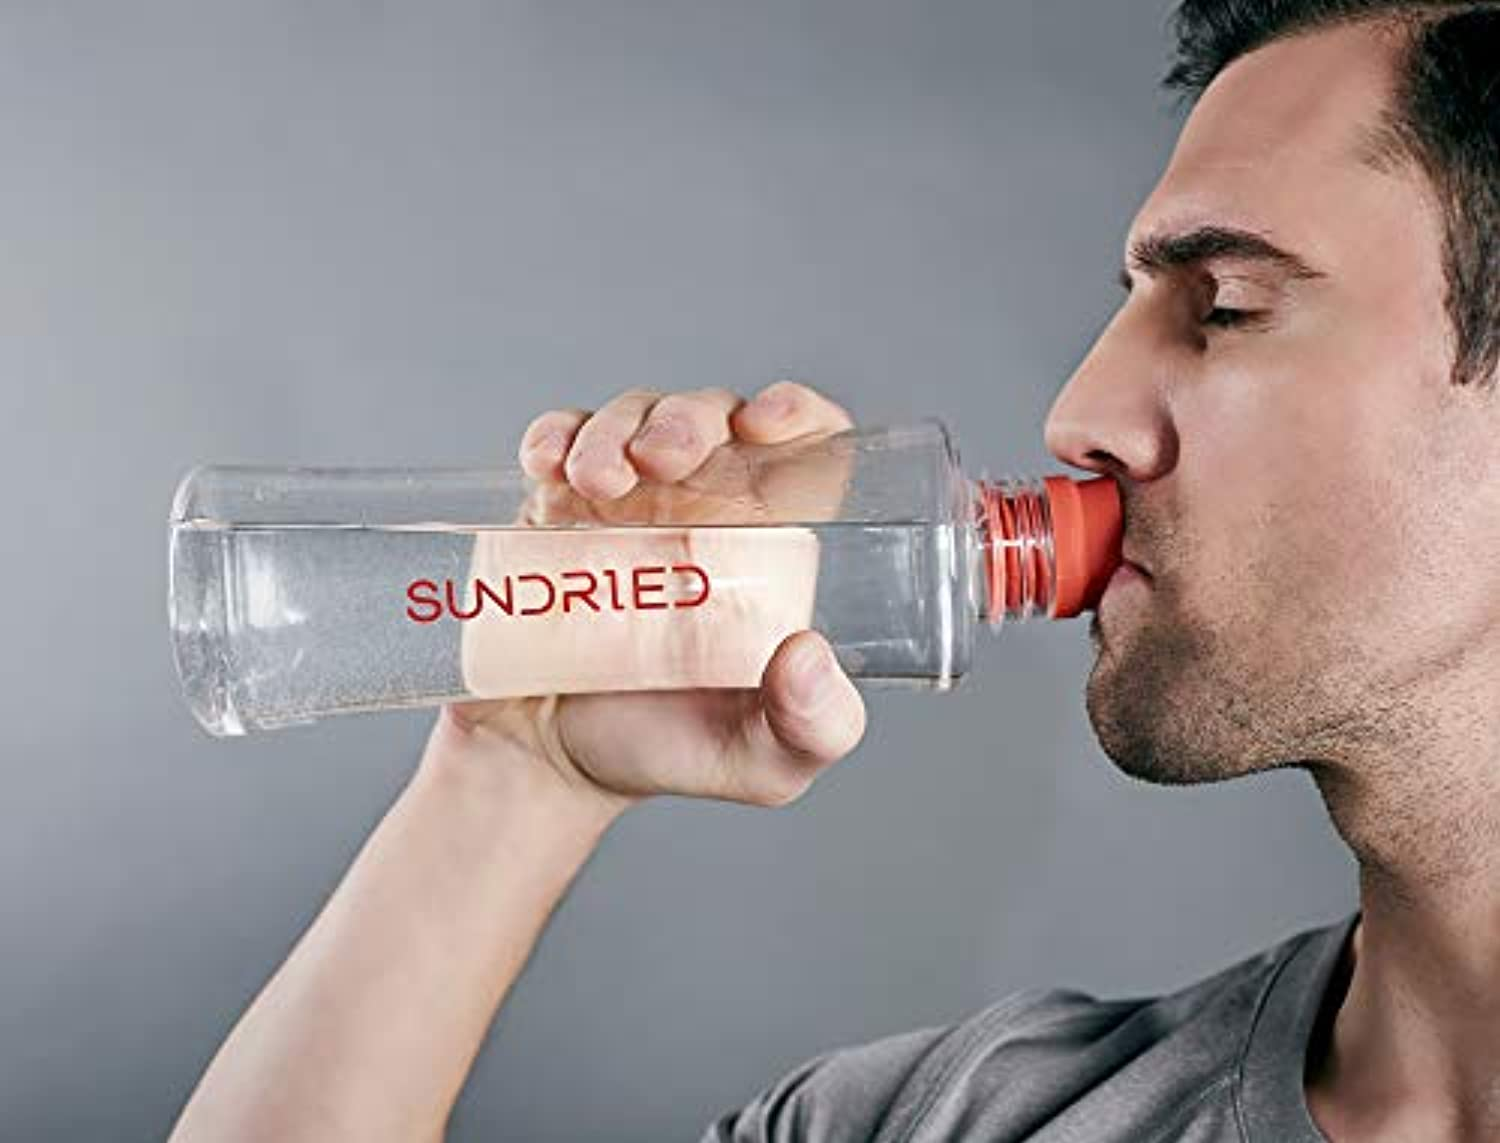 Sundried BPA Free Leakproof Outdoor, Sports, Fitness & Gym Water Bottle 750ml - smrt-life.com